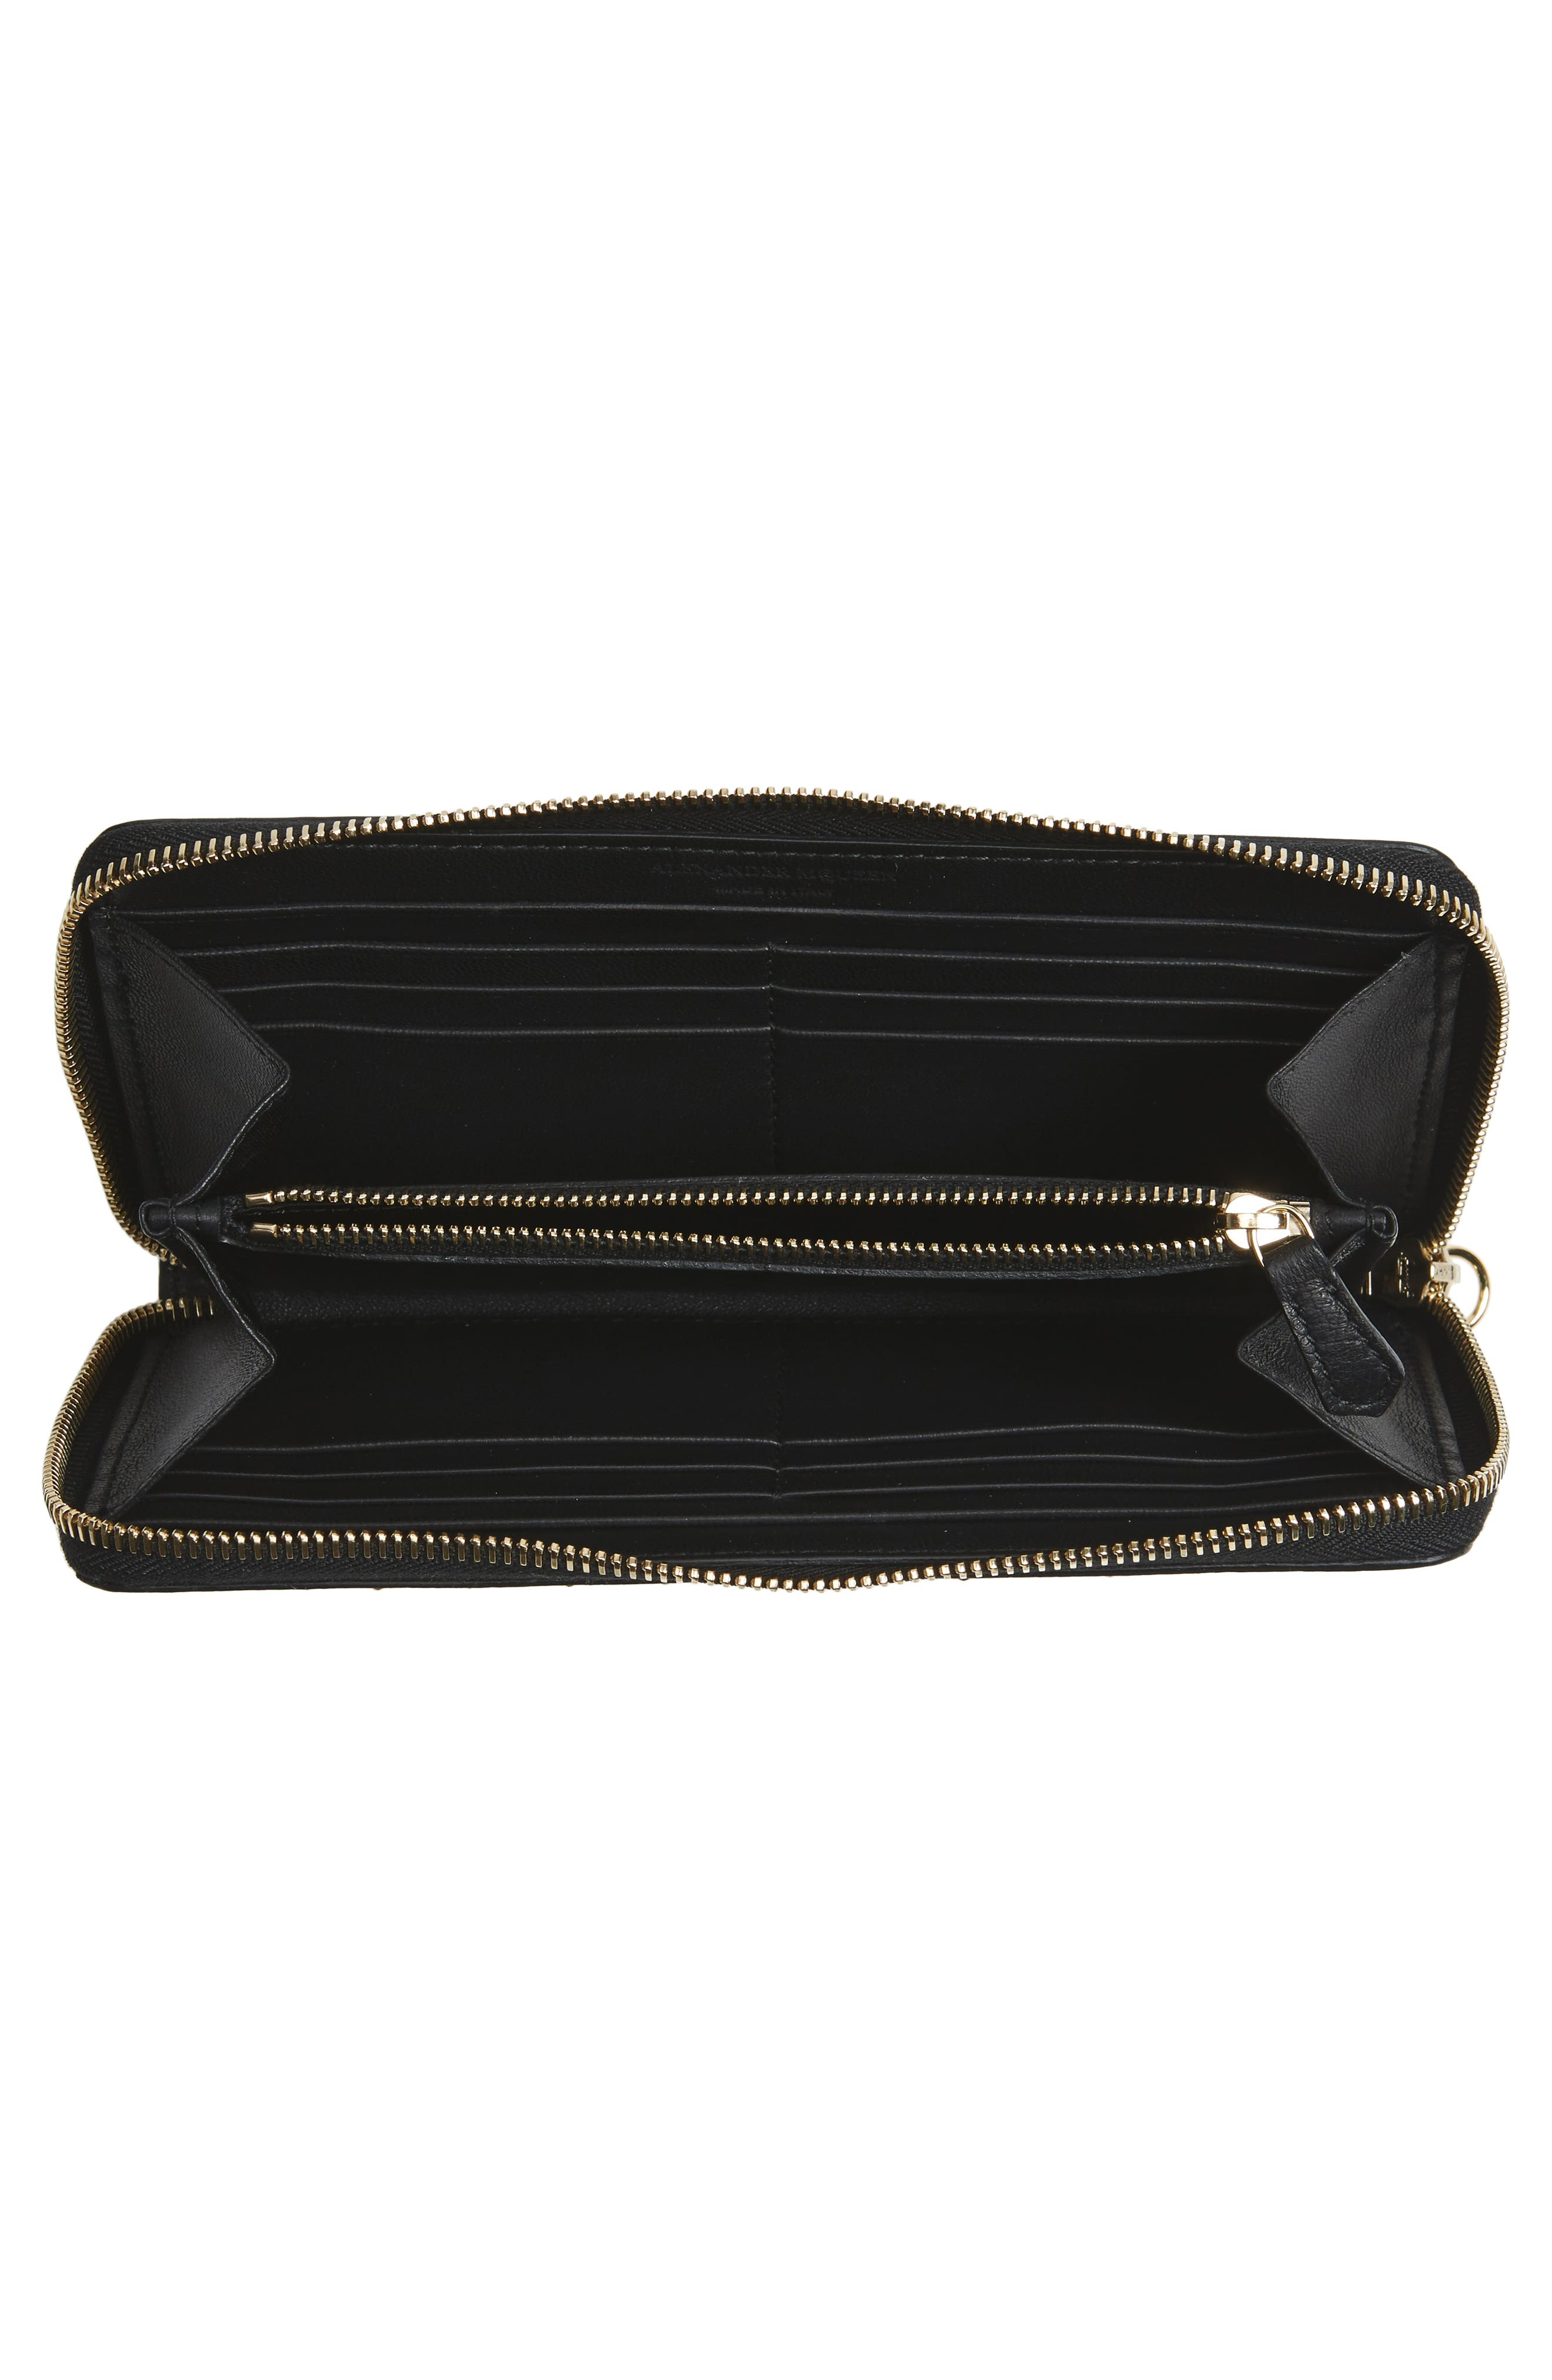 Studded Leather Continental Wallet,                             Alternate thumbnail 2, color,                             Black